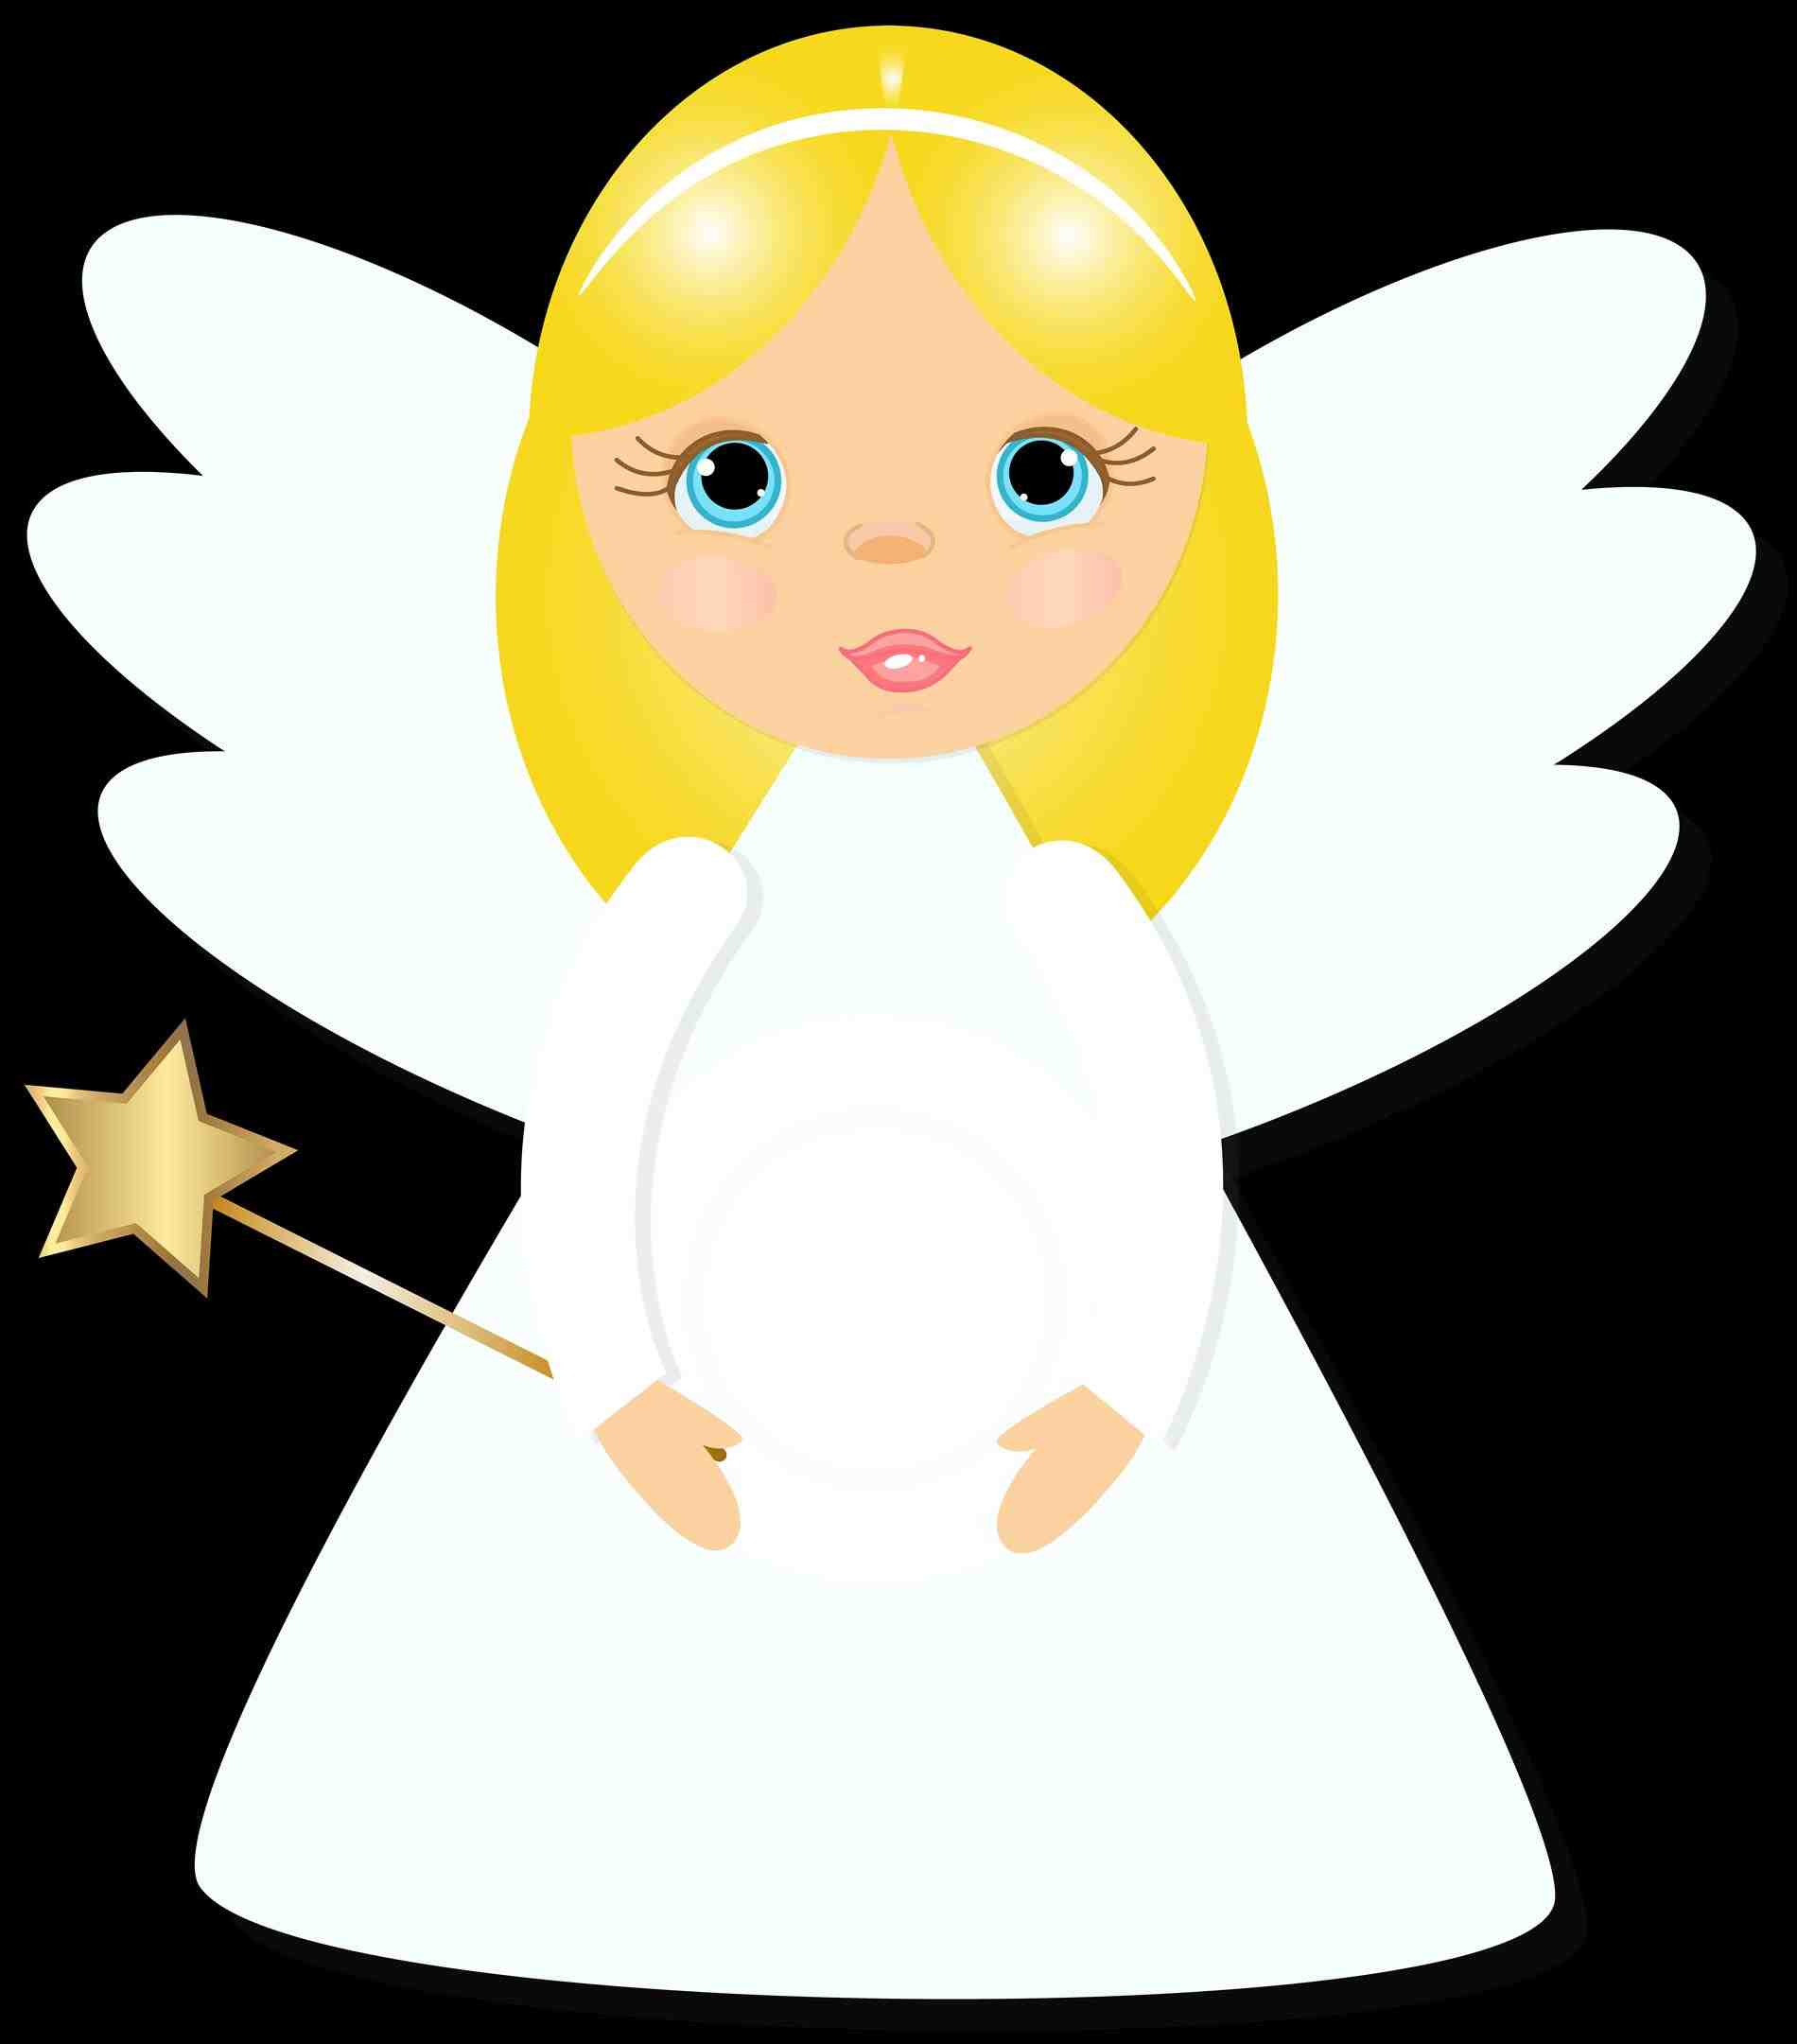 Angels clipart angle. Free download best